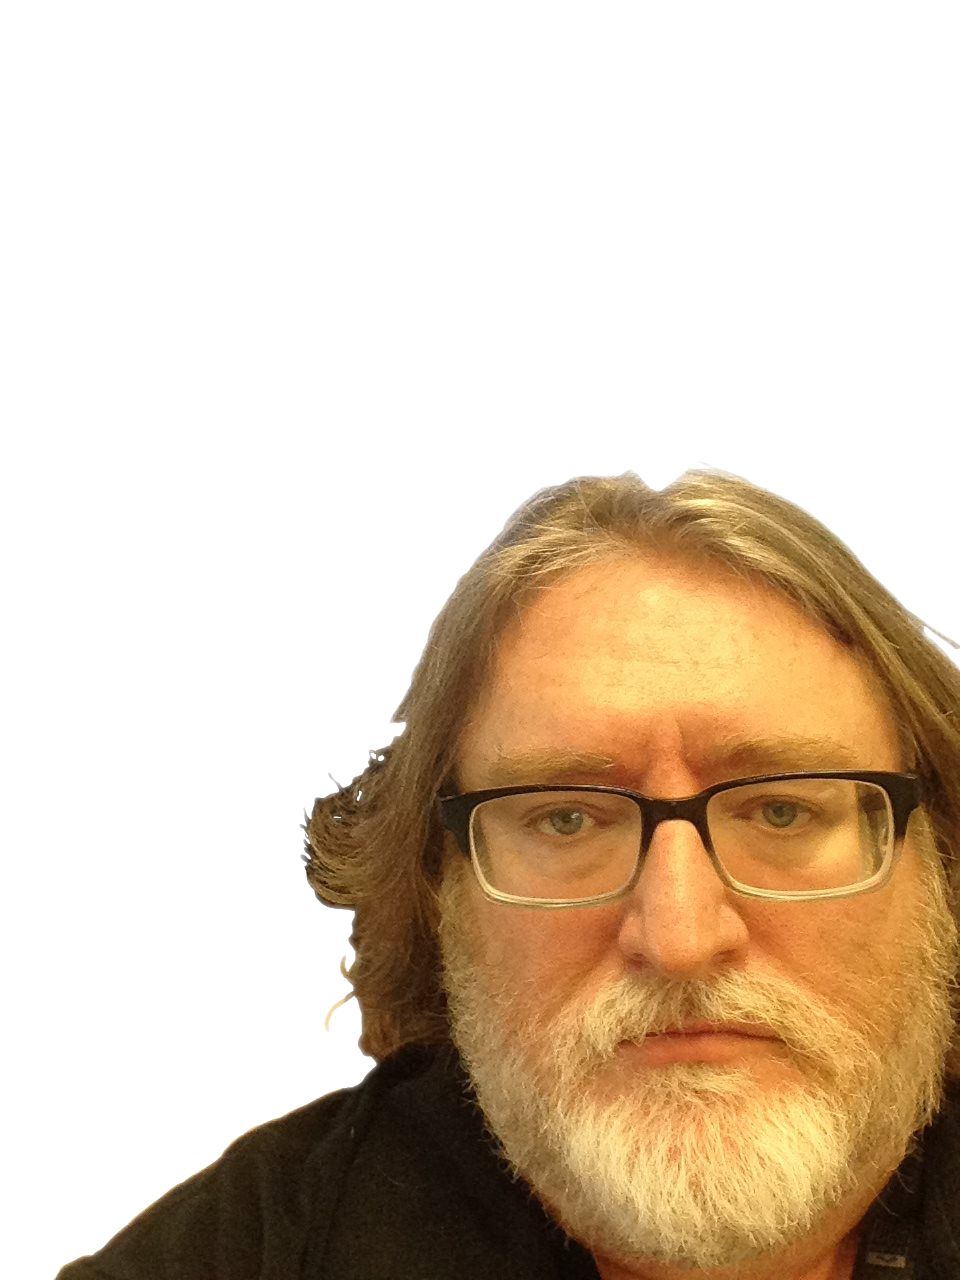 Gaben face clear png. Where is gabe newell